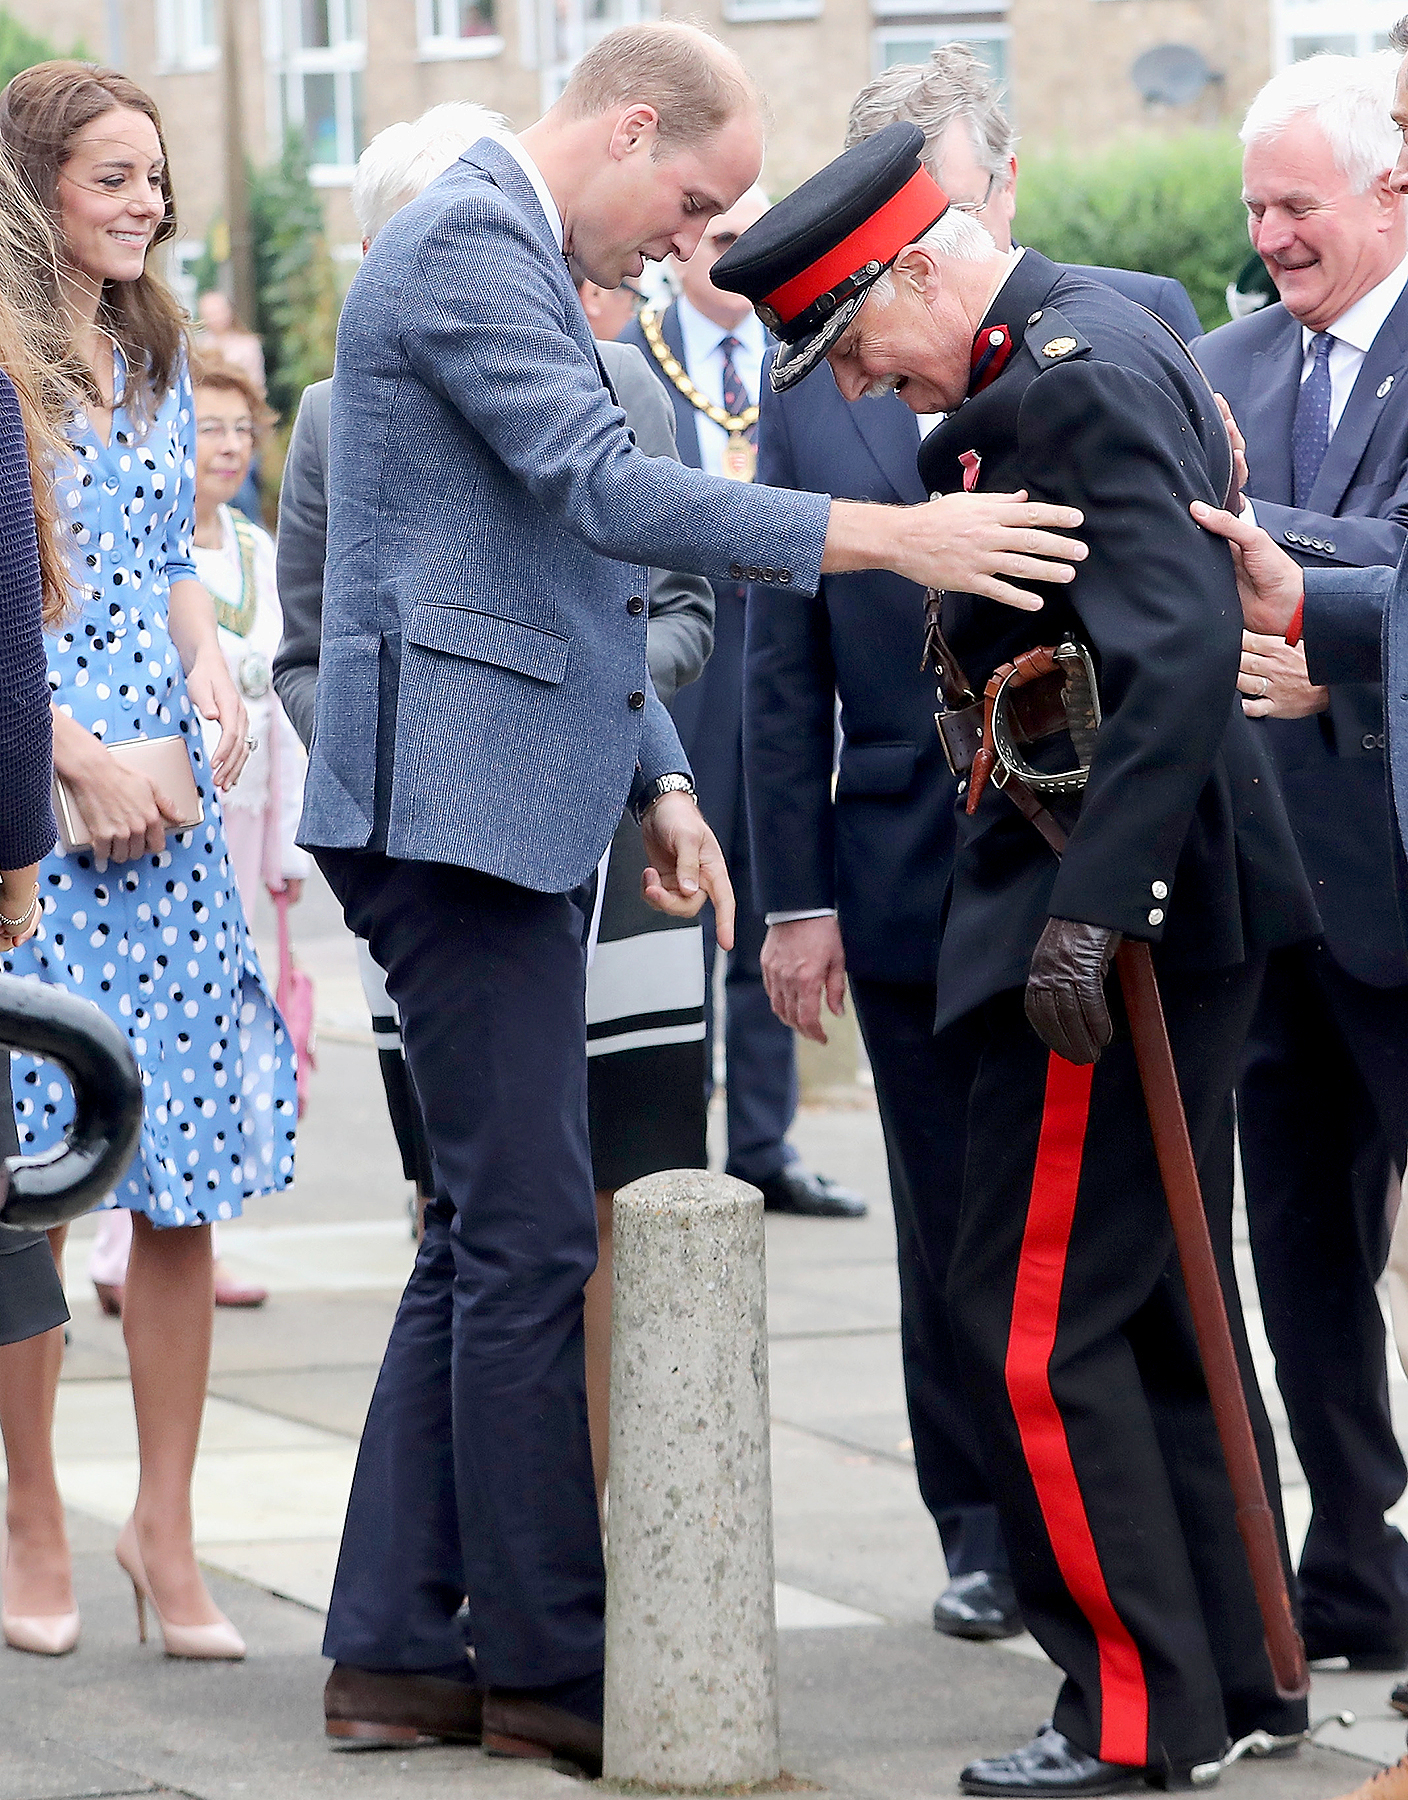 Catherine, Duchess of Cambridge looks on as Prince William, Duke of Cambridge rushes to helpVice Lord Lieutenant of Essex Jonathon Douglas-Hughes who fell backwards over a bollard as they arrive at Steward's Academy on September 16, 2016 in Harlow, England.